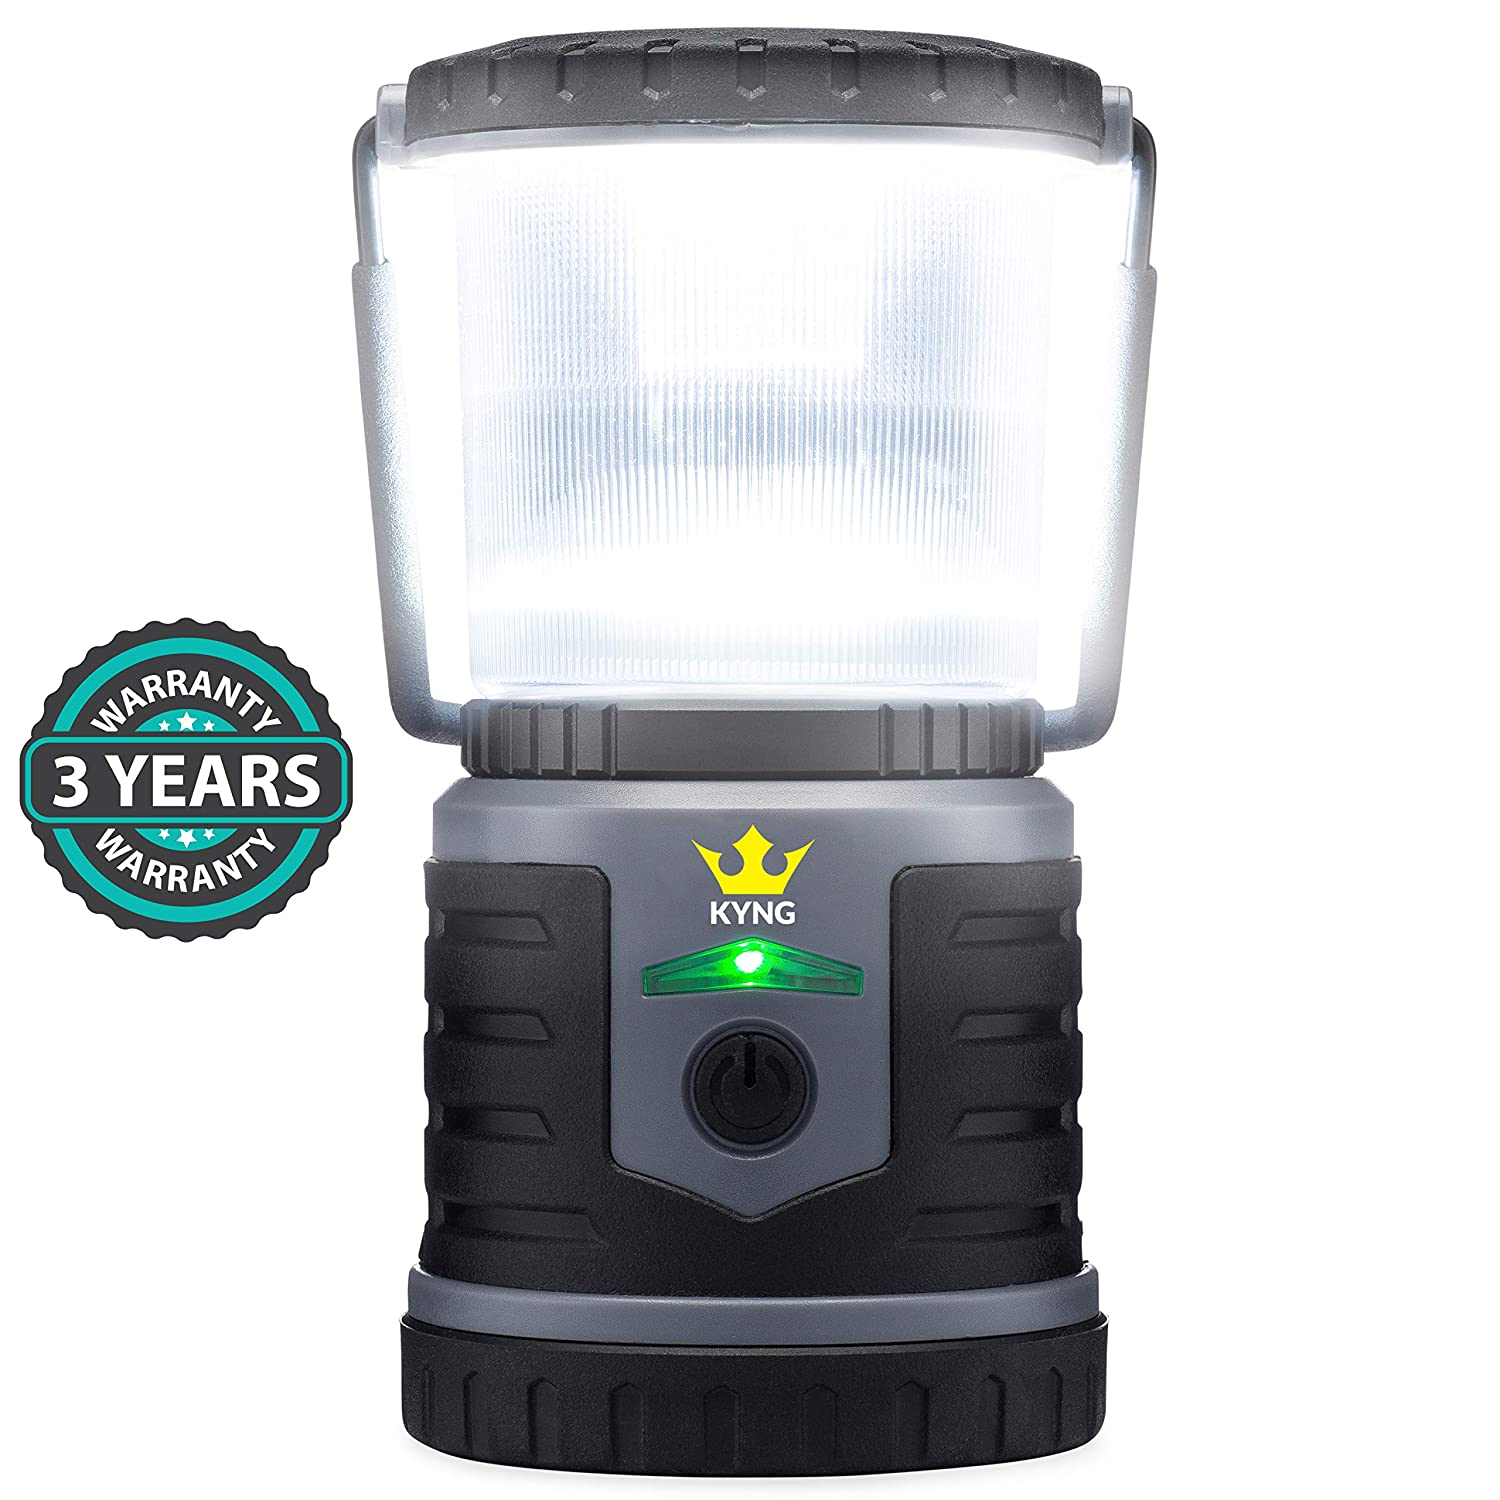 Rechargeable LED Lantern Brightest Light for Camping, Emergency Use, Outdoors, and Home- Lasts for 250 Hours on a Single Charge- Includes USB Cord and Wall Plug, Built in Phone Charger